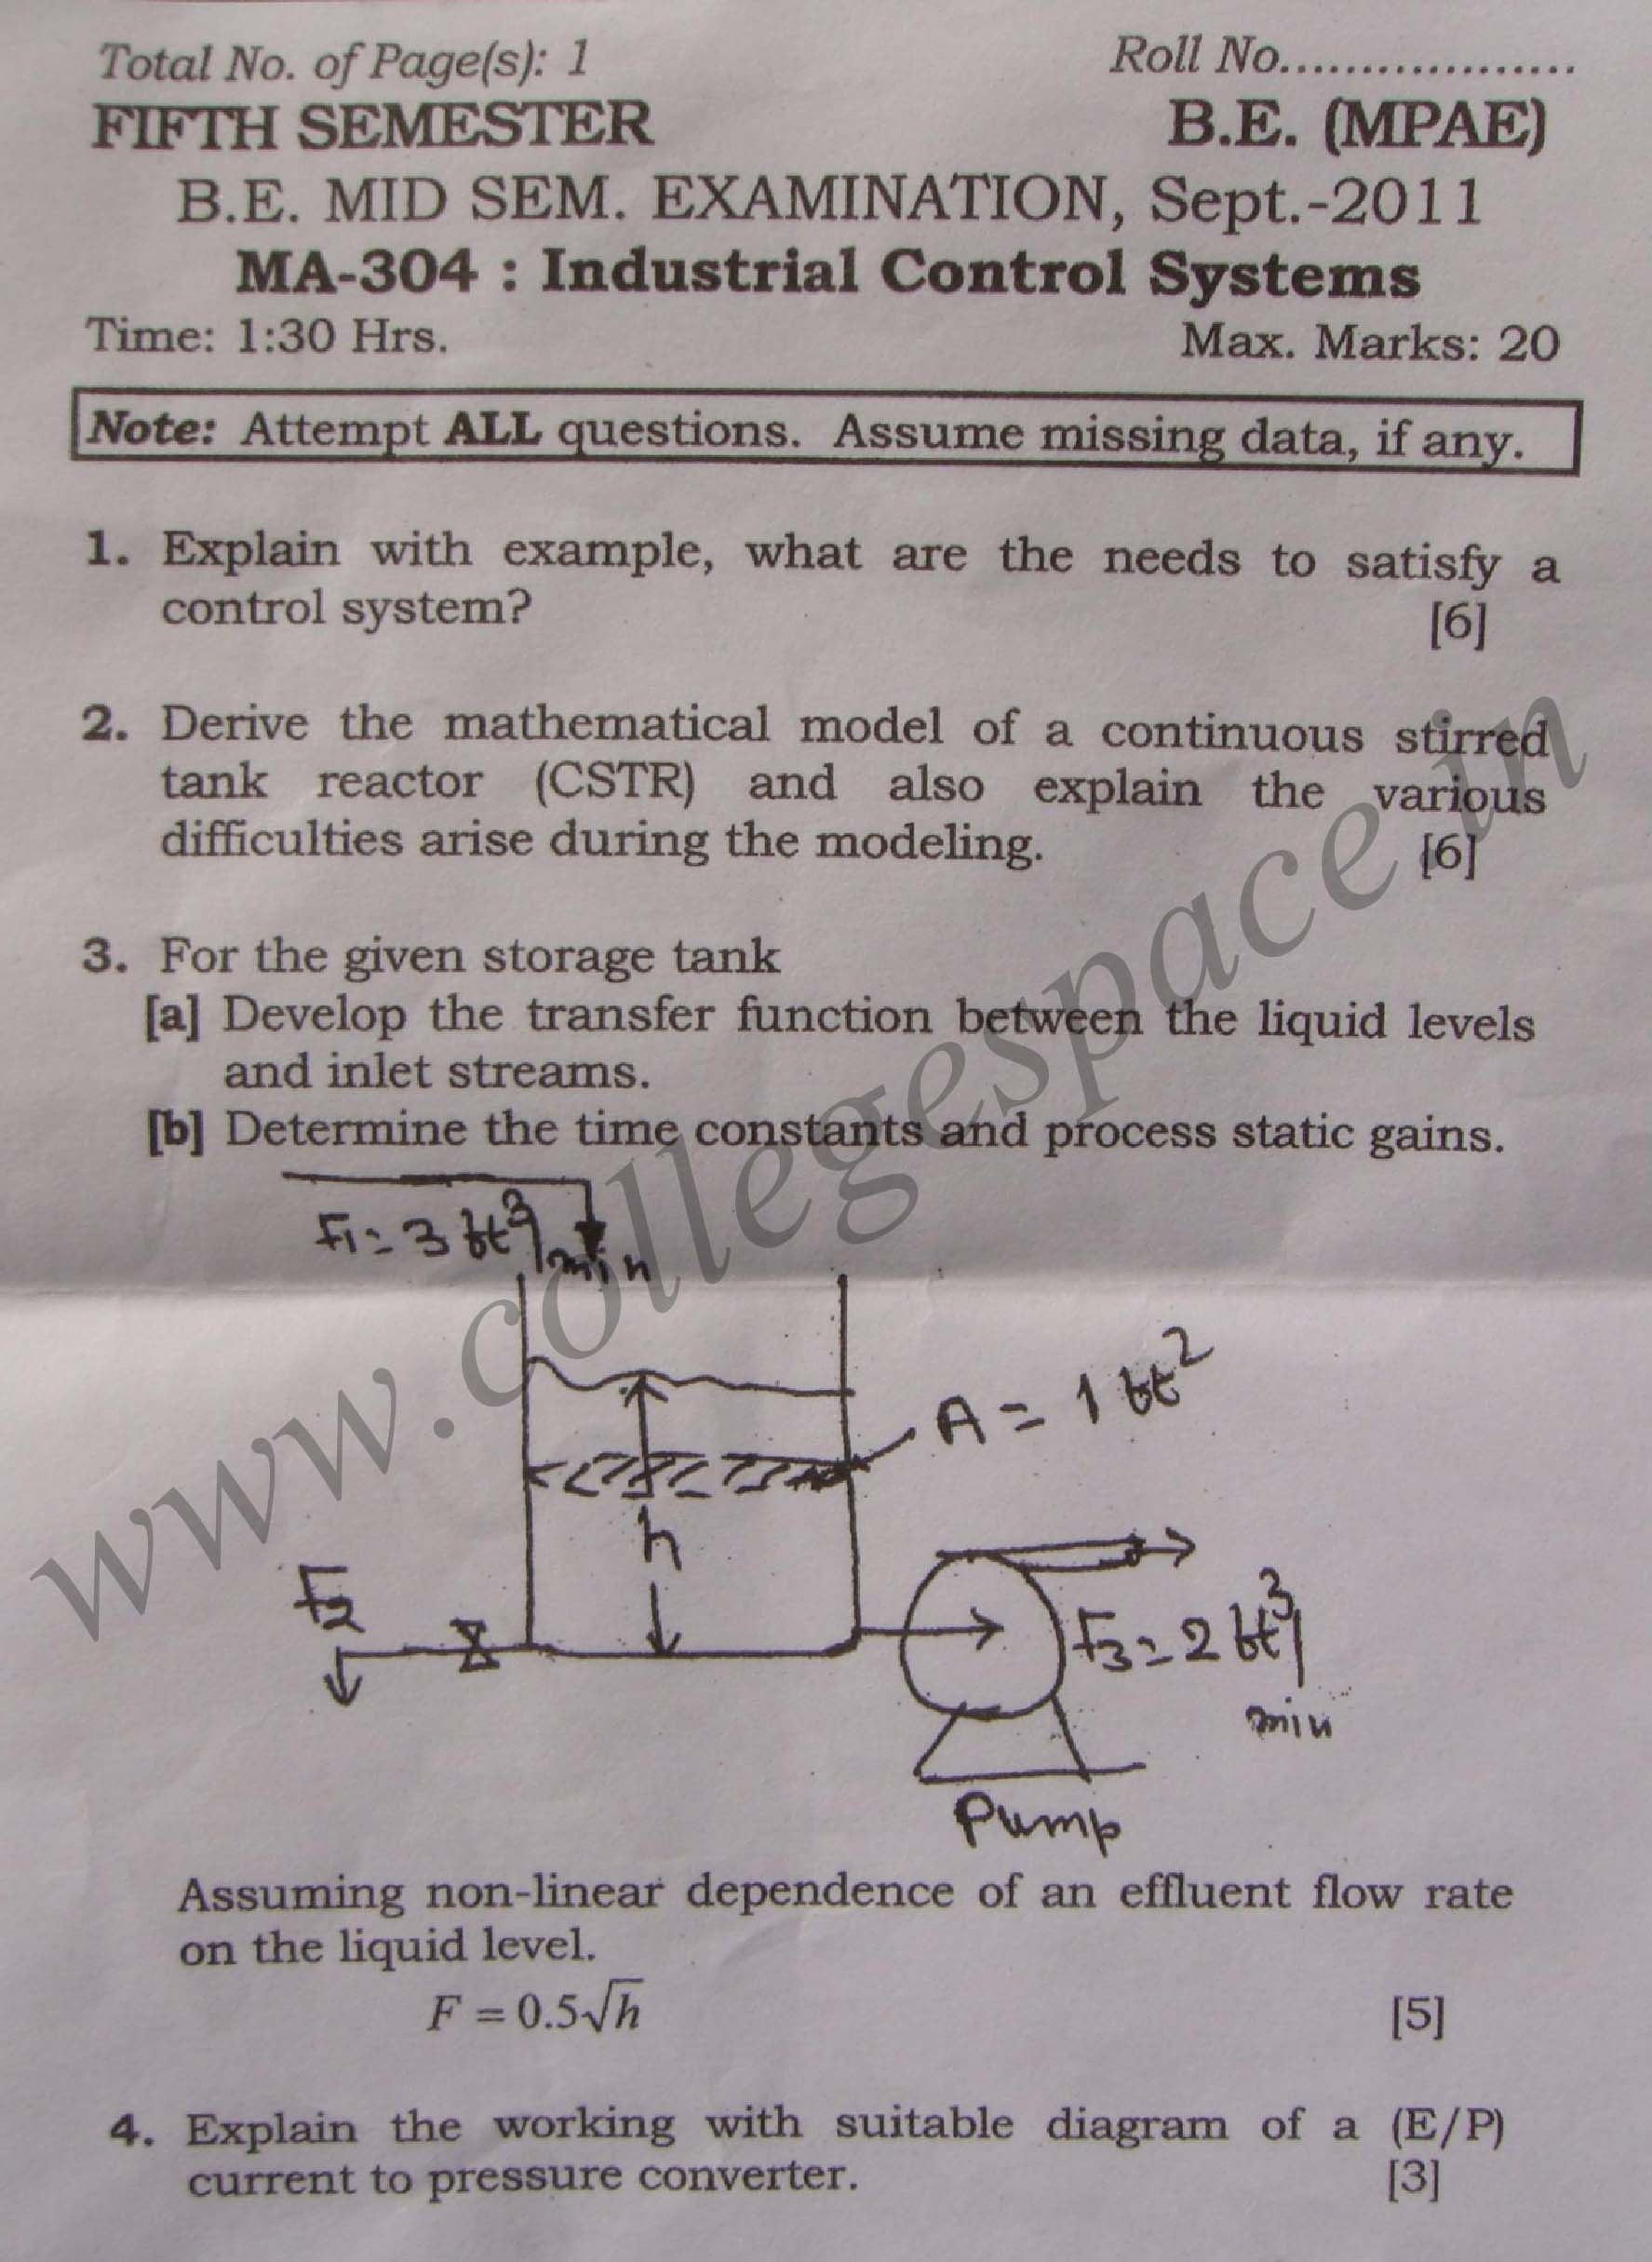 NSIT Question Papers 2011 – 5 Semester - Mid Sem - MA-304